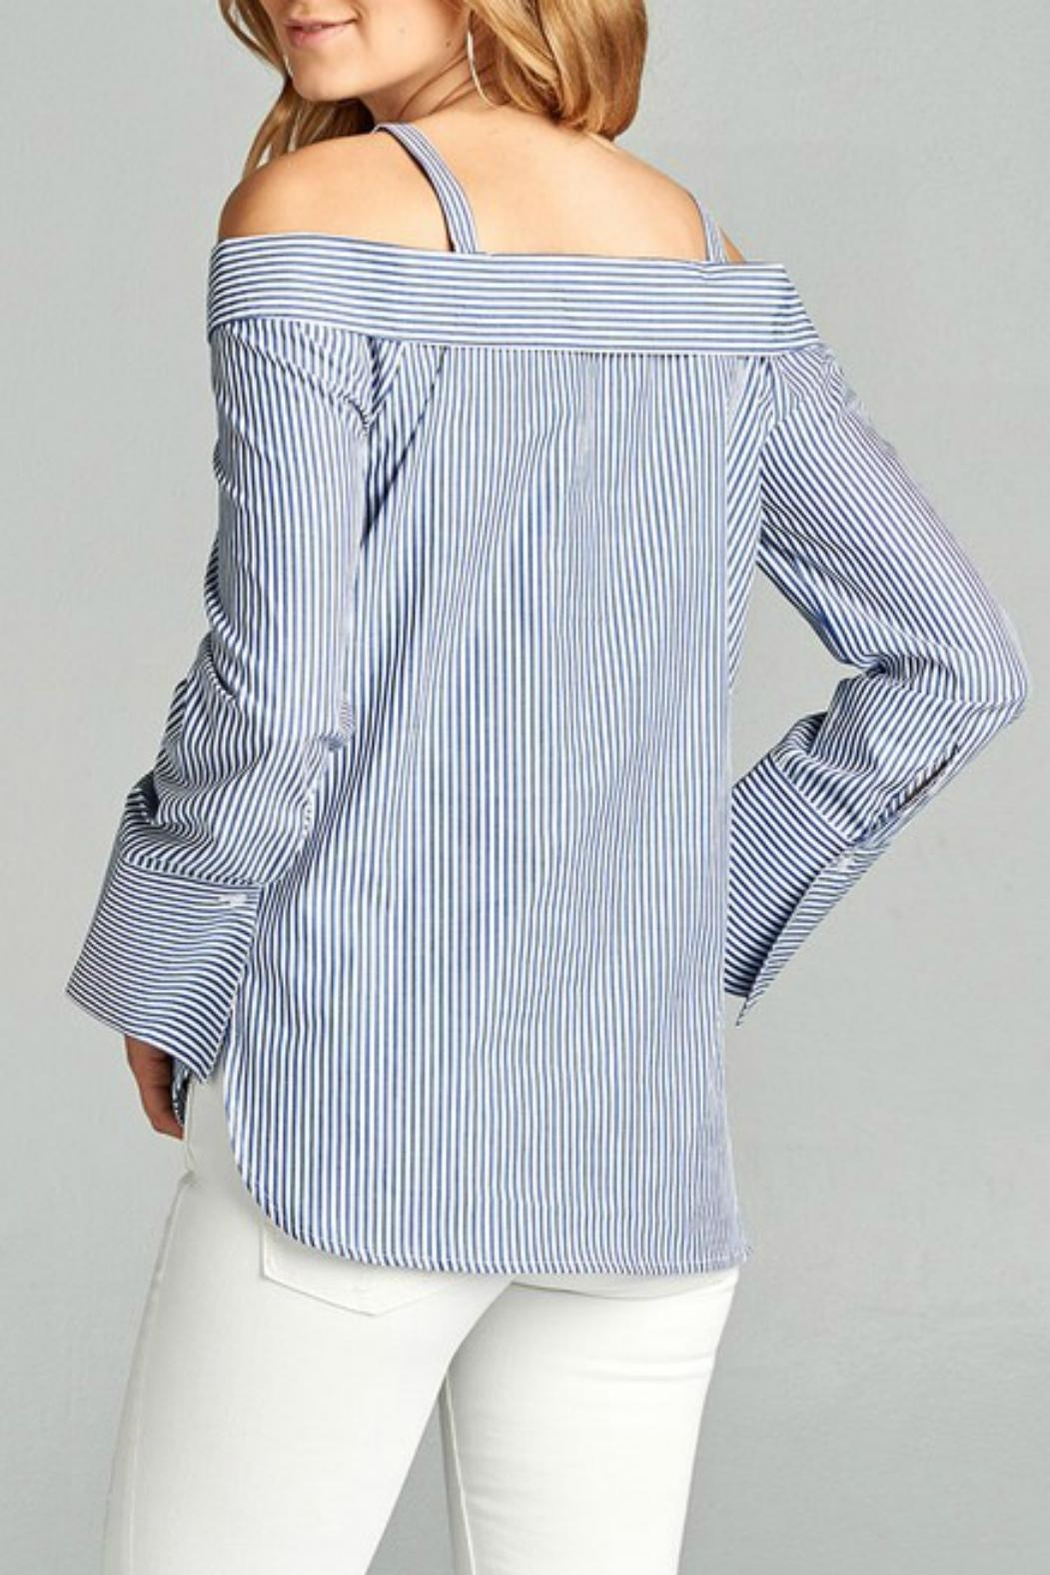 Active Basic Ots Oxford Top - Front Full Image